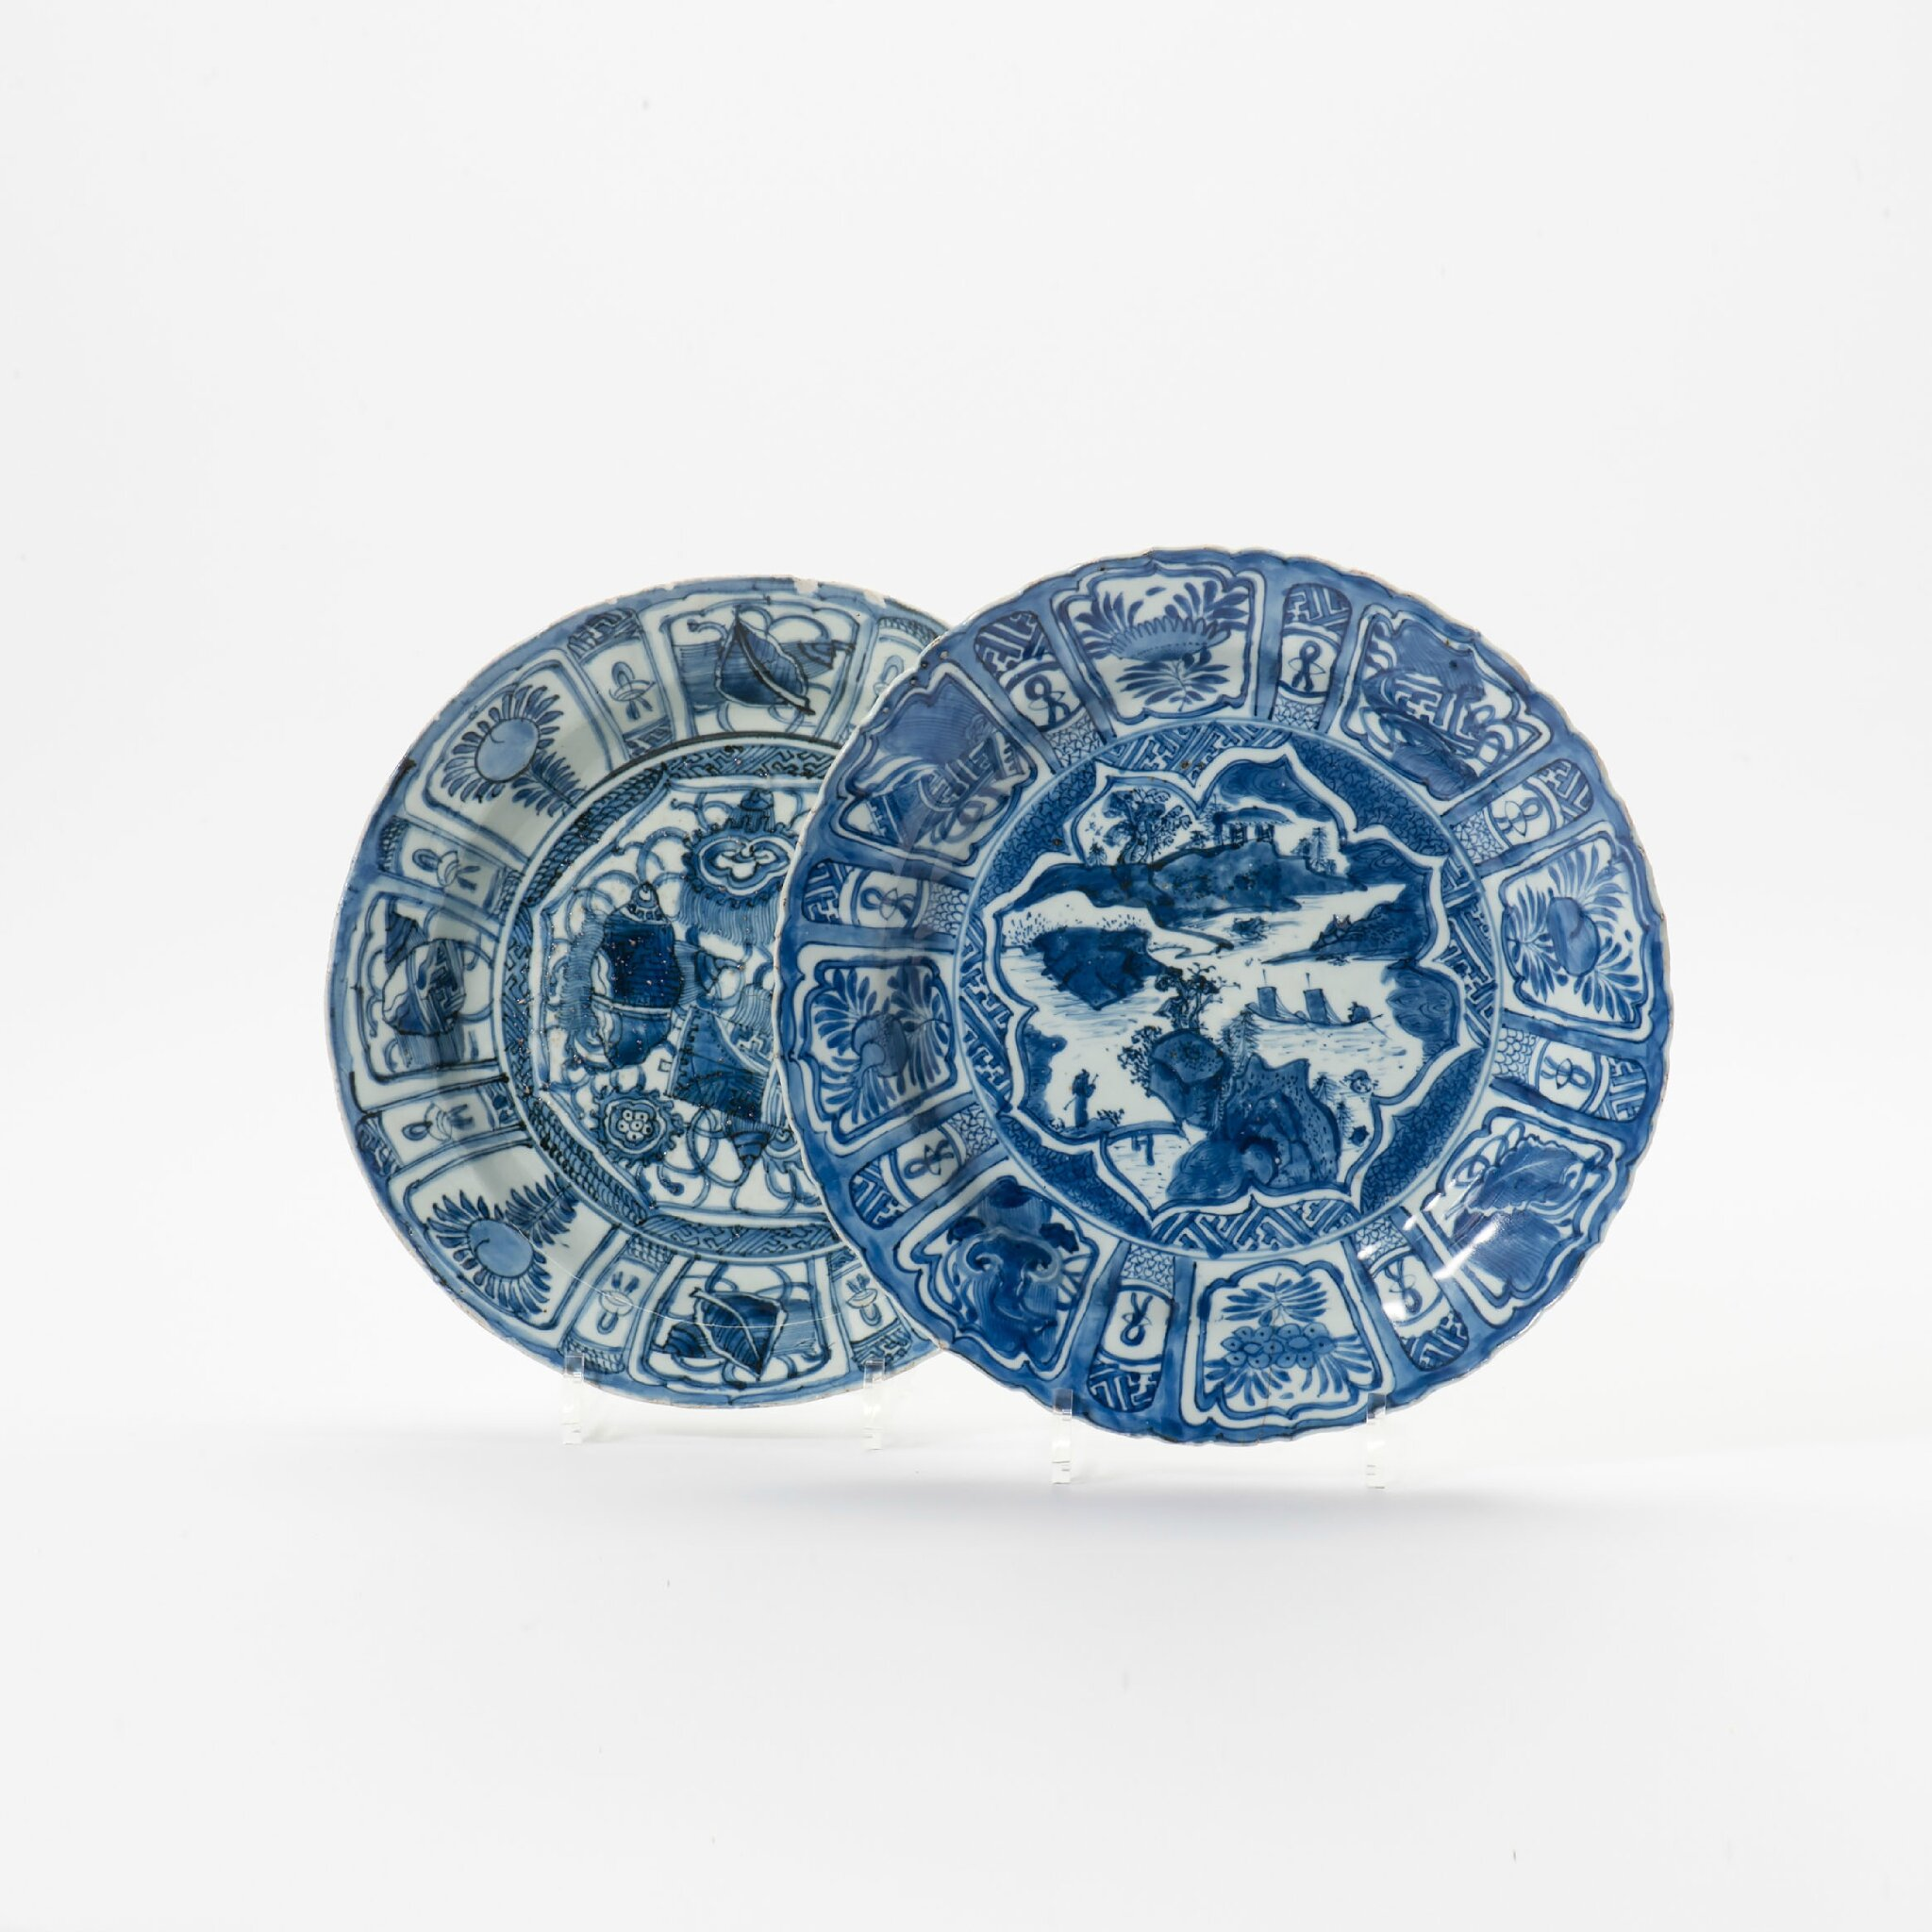 Two Kraak porcelain dishes, Wanli period (1573-1619)